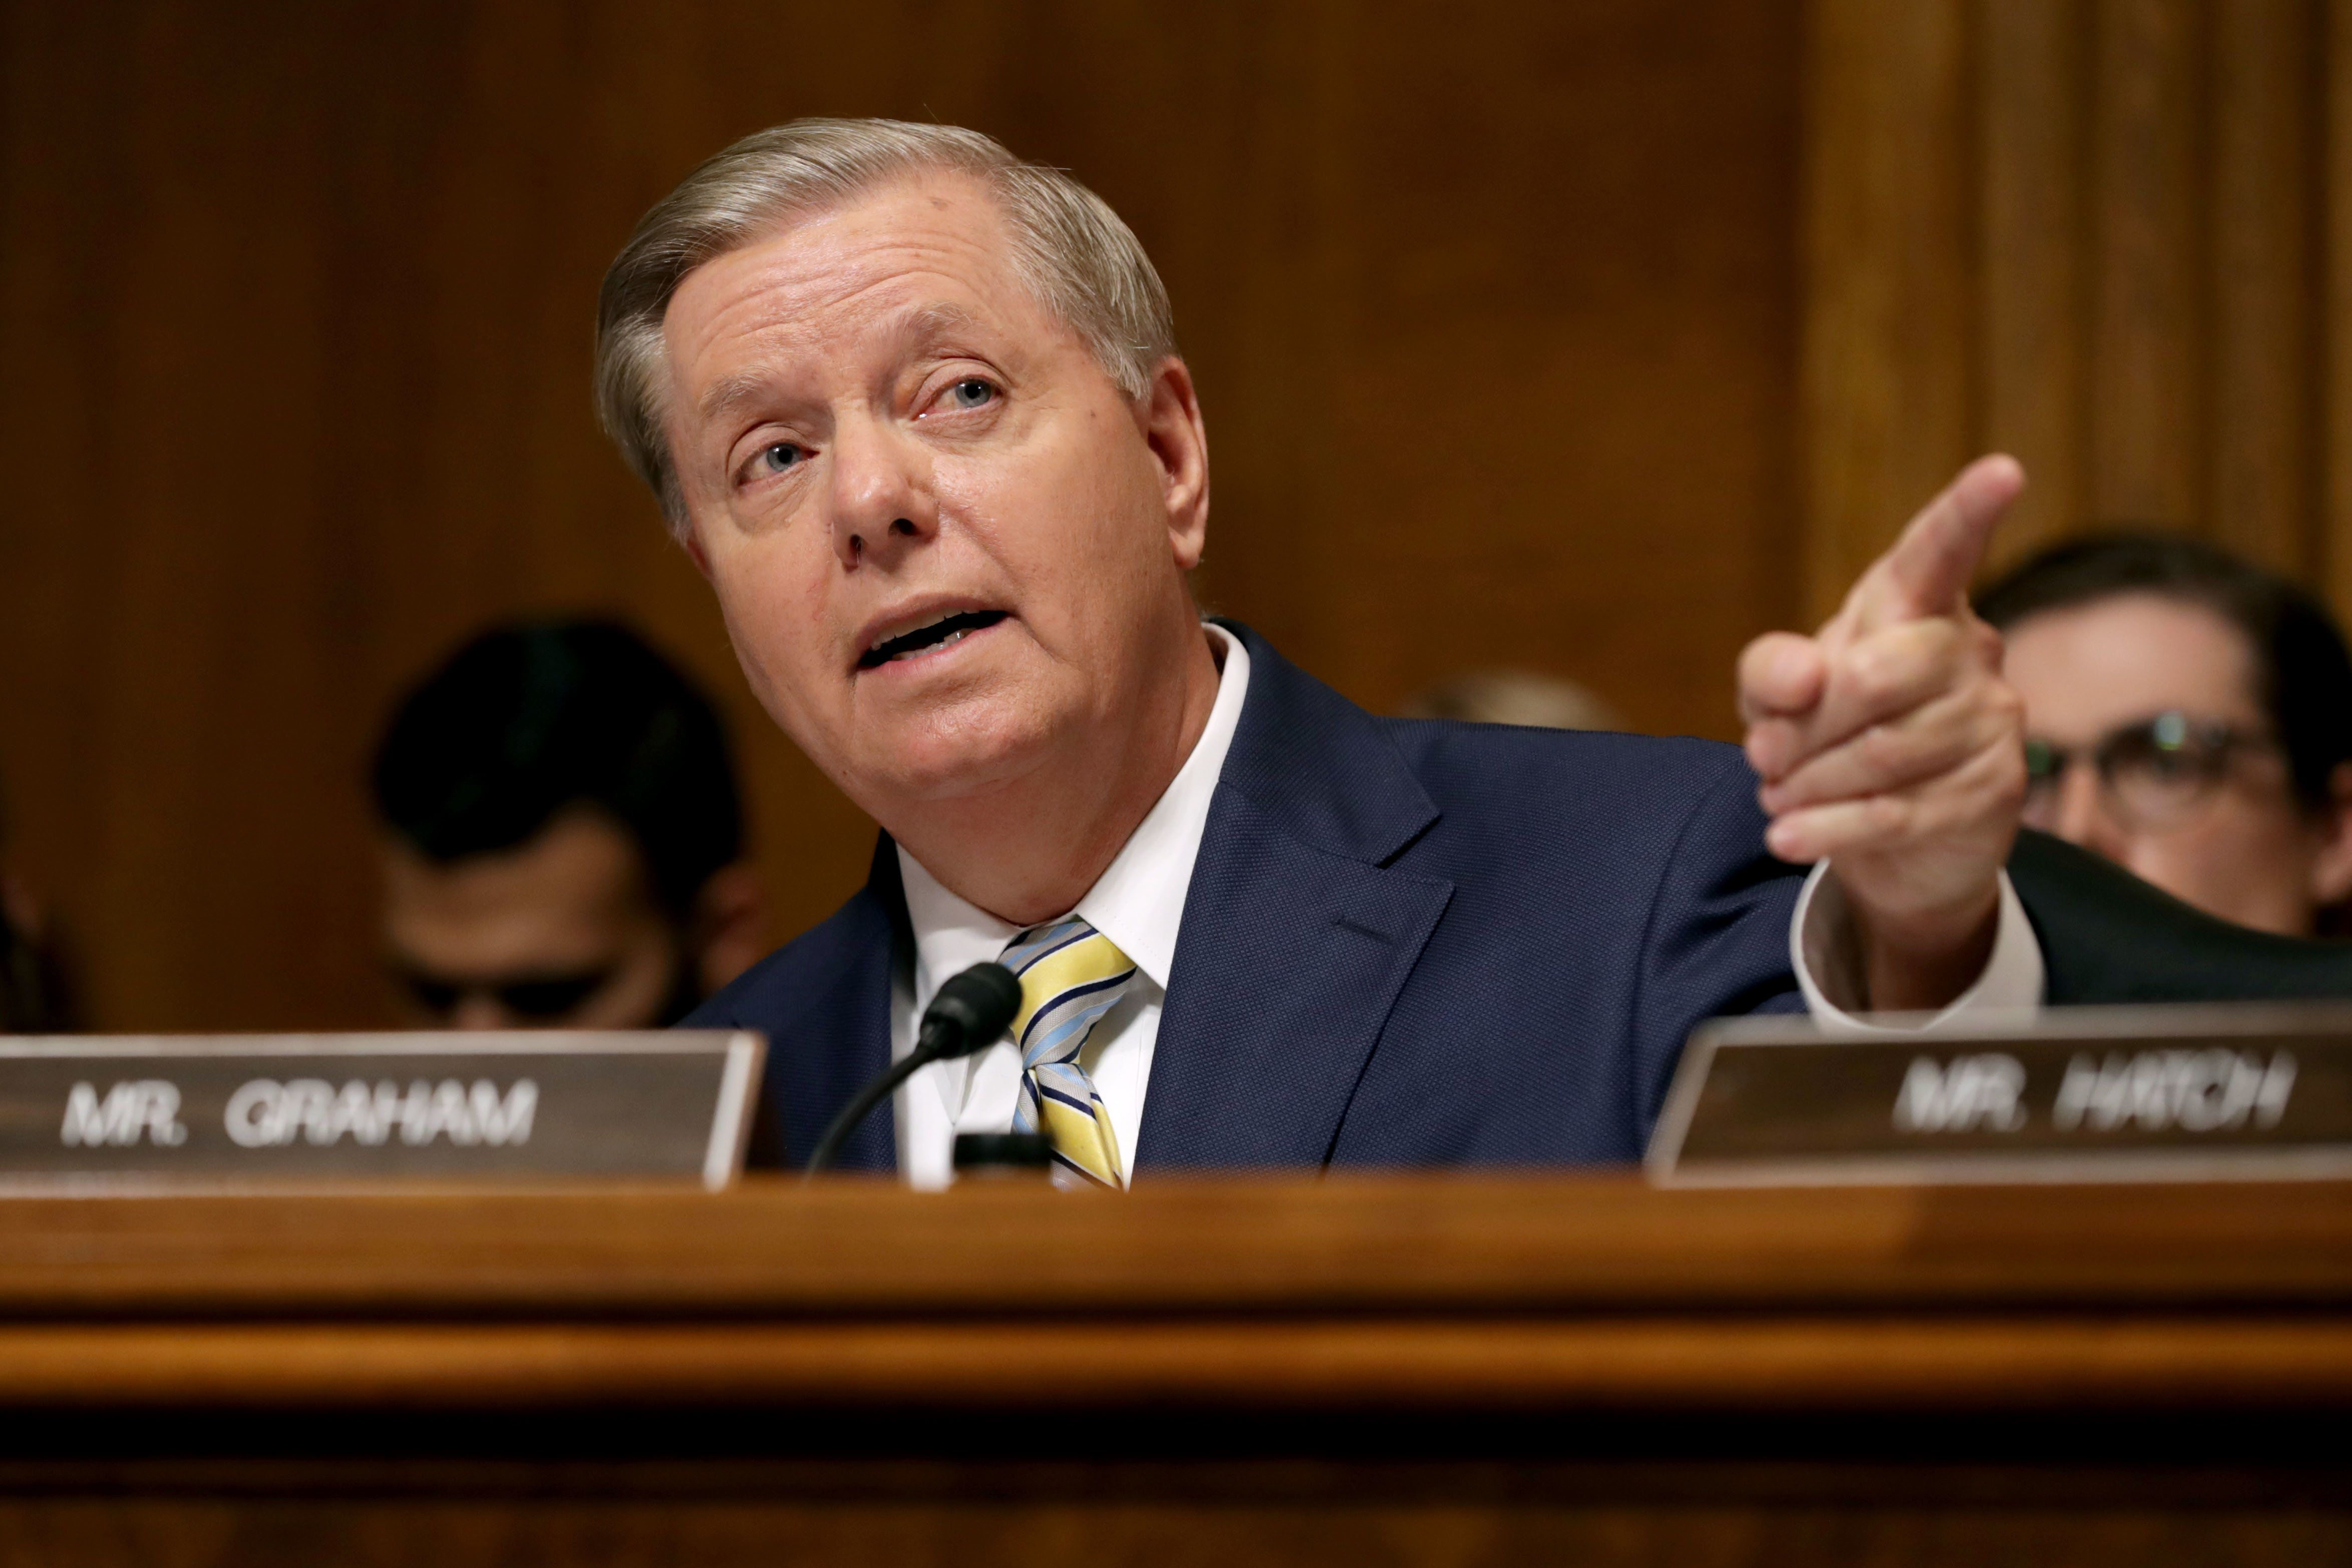 WASHINGTON, DC - SEPTEMBER 28: Senate Judiciary Committee member Sen. Lindsey Graham (R-SC) delivers remarks about Supreme Court nominee Judge Brett Kavanaugh during a mark up hearing in the Dirksen Senate Office Building on Capitol Hill September 28, 2018 in Washington, DC. The committee agreed to an additional week of investigation into accusations of sexual assault against Kavanaugh before the full Senate votes on his confirmation. A day earlier the committee heard from Kavanaugh and Christine Blasey Ford, a California professor who who has accused Kavnaugh of sexually assaulting her during a party in 1982 when they were high school students in suburban Maryland. (Photo by Chip Somodevilla/Getty Images)